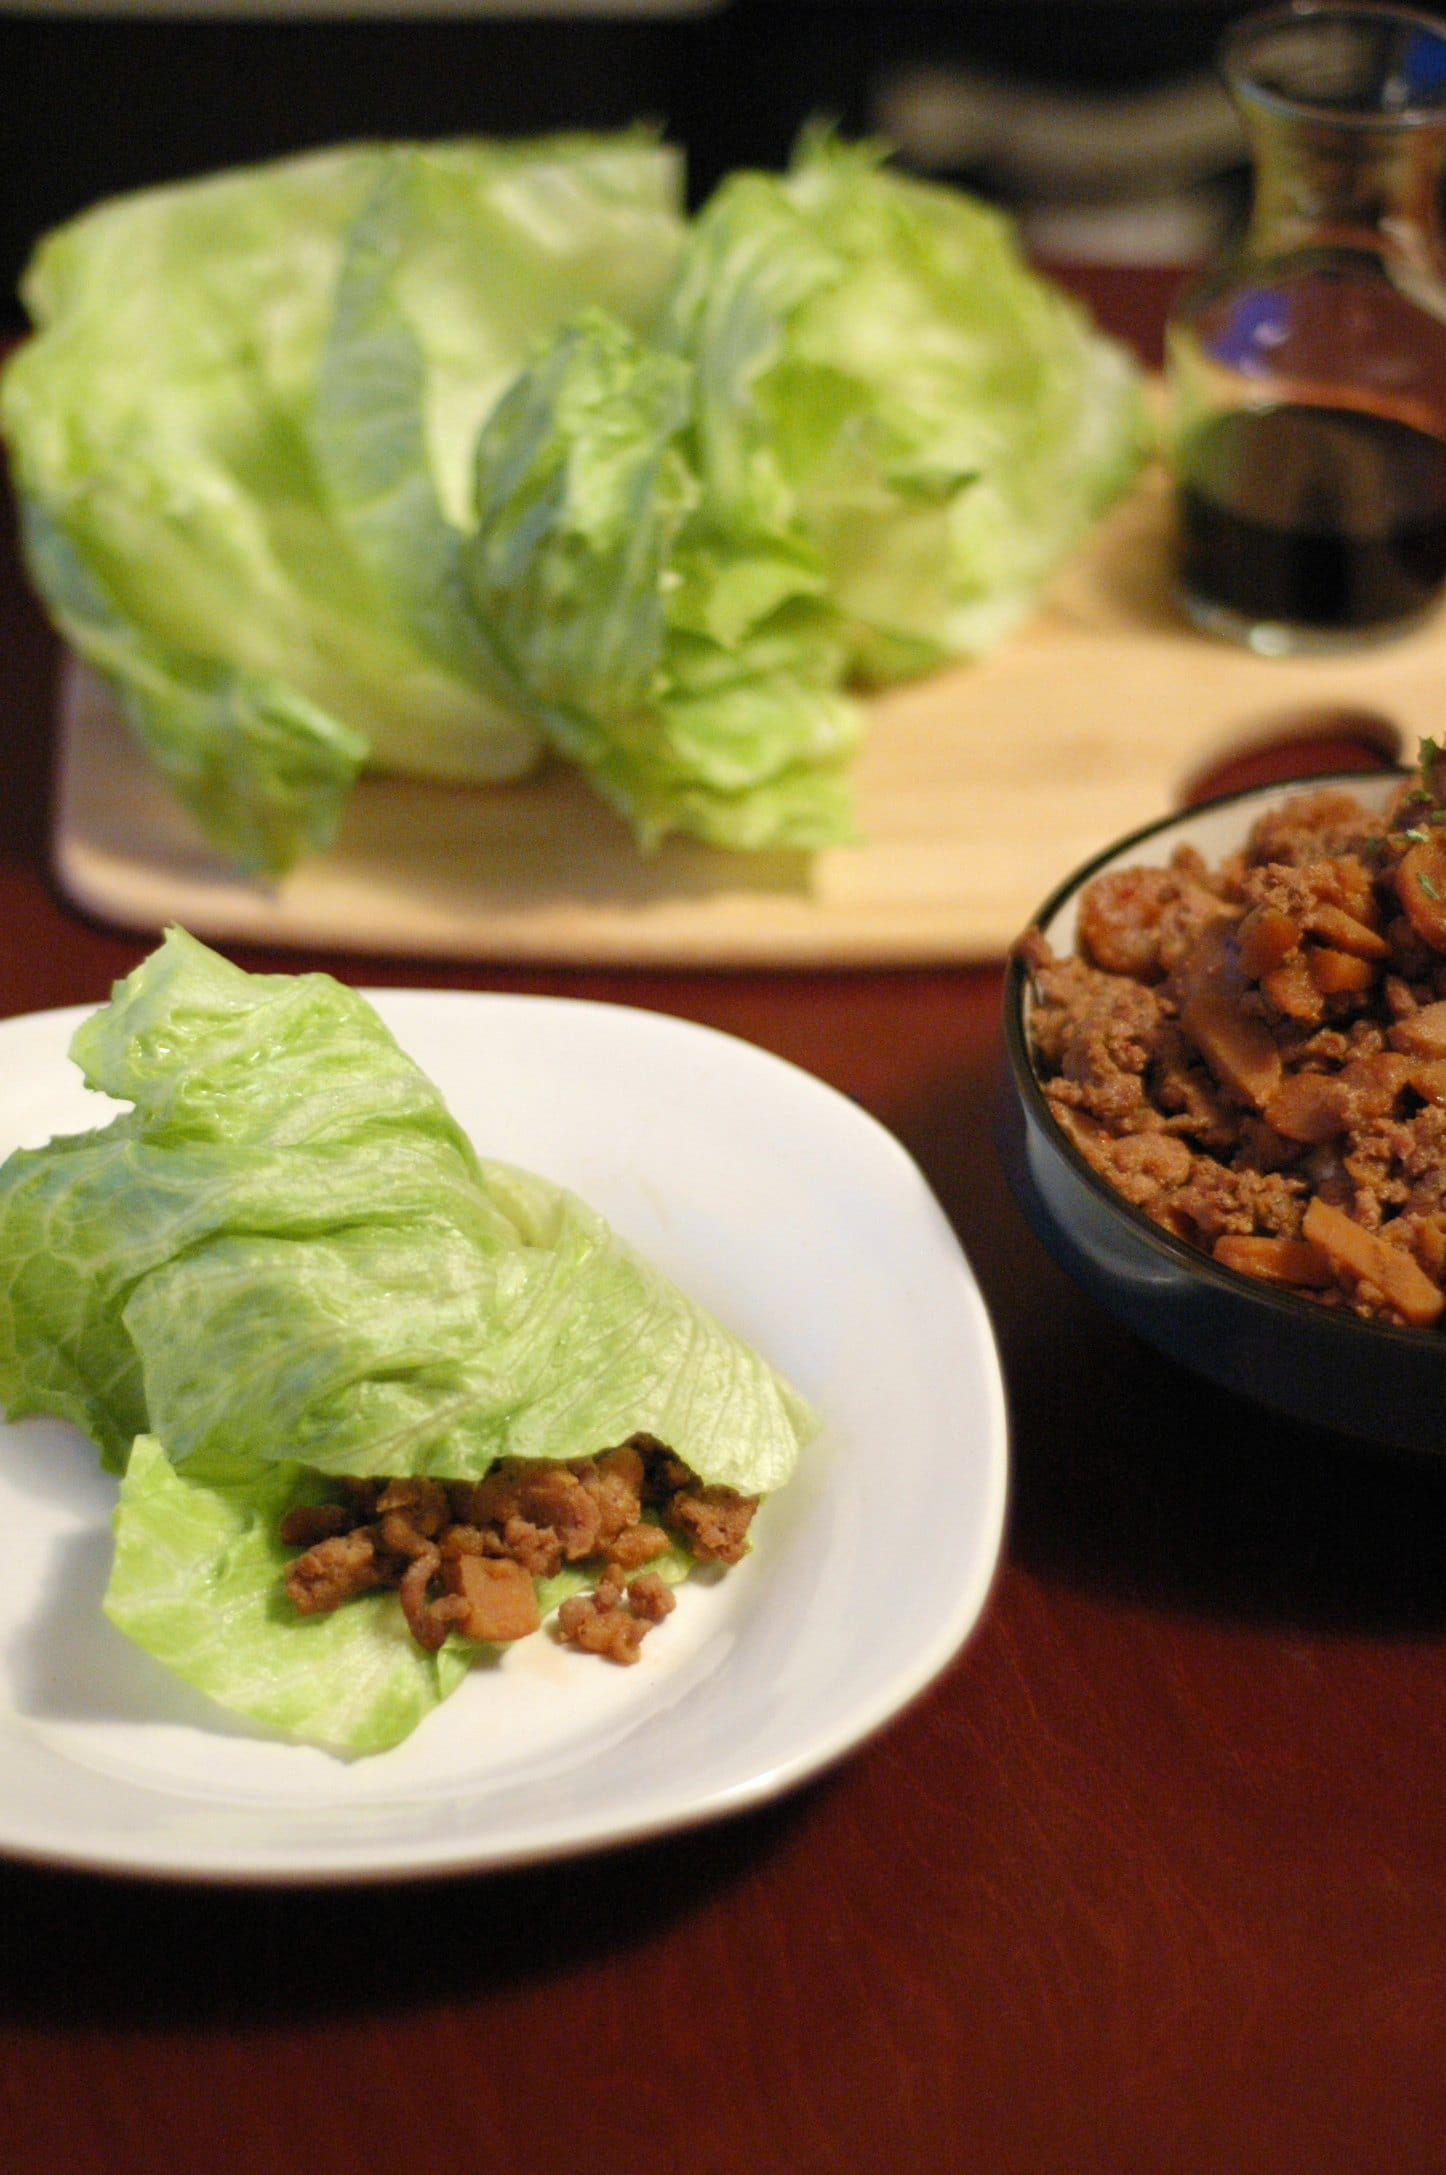 lettuce wrap on white plate, head of lettuce on cutting board and black bowl with pork mixture in background